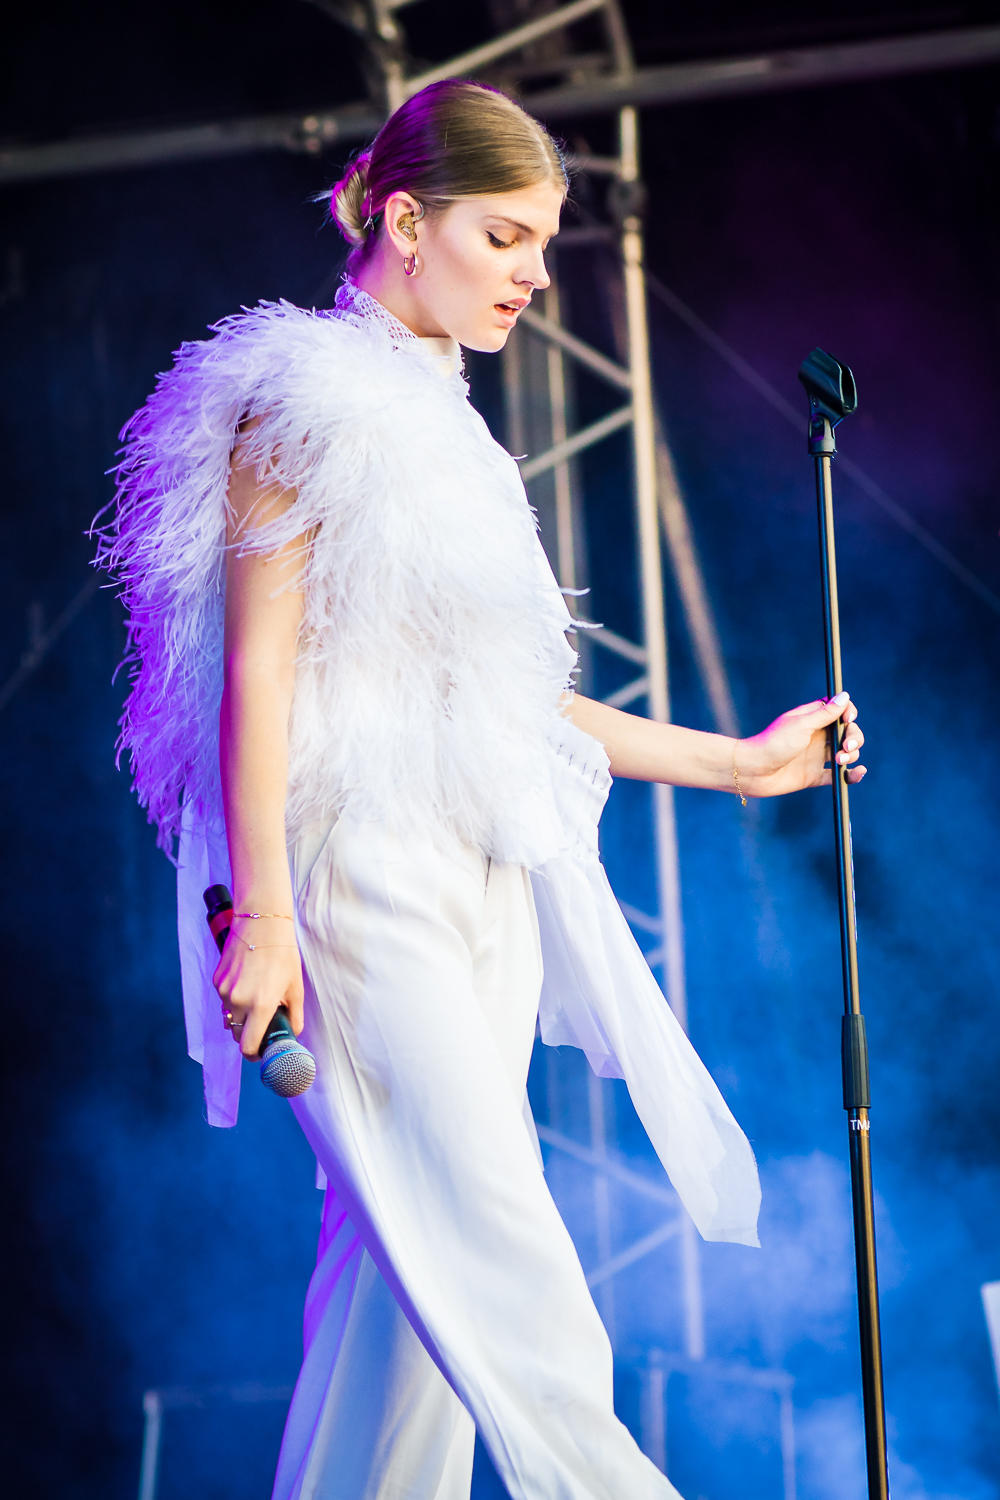 Emma Bale @ Genk On Stage 2019 (© Timmy Haubrechts)